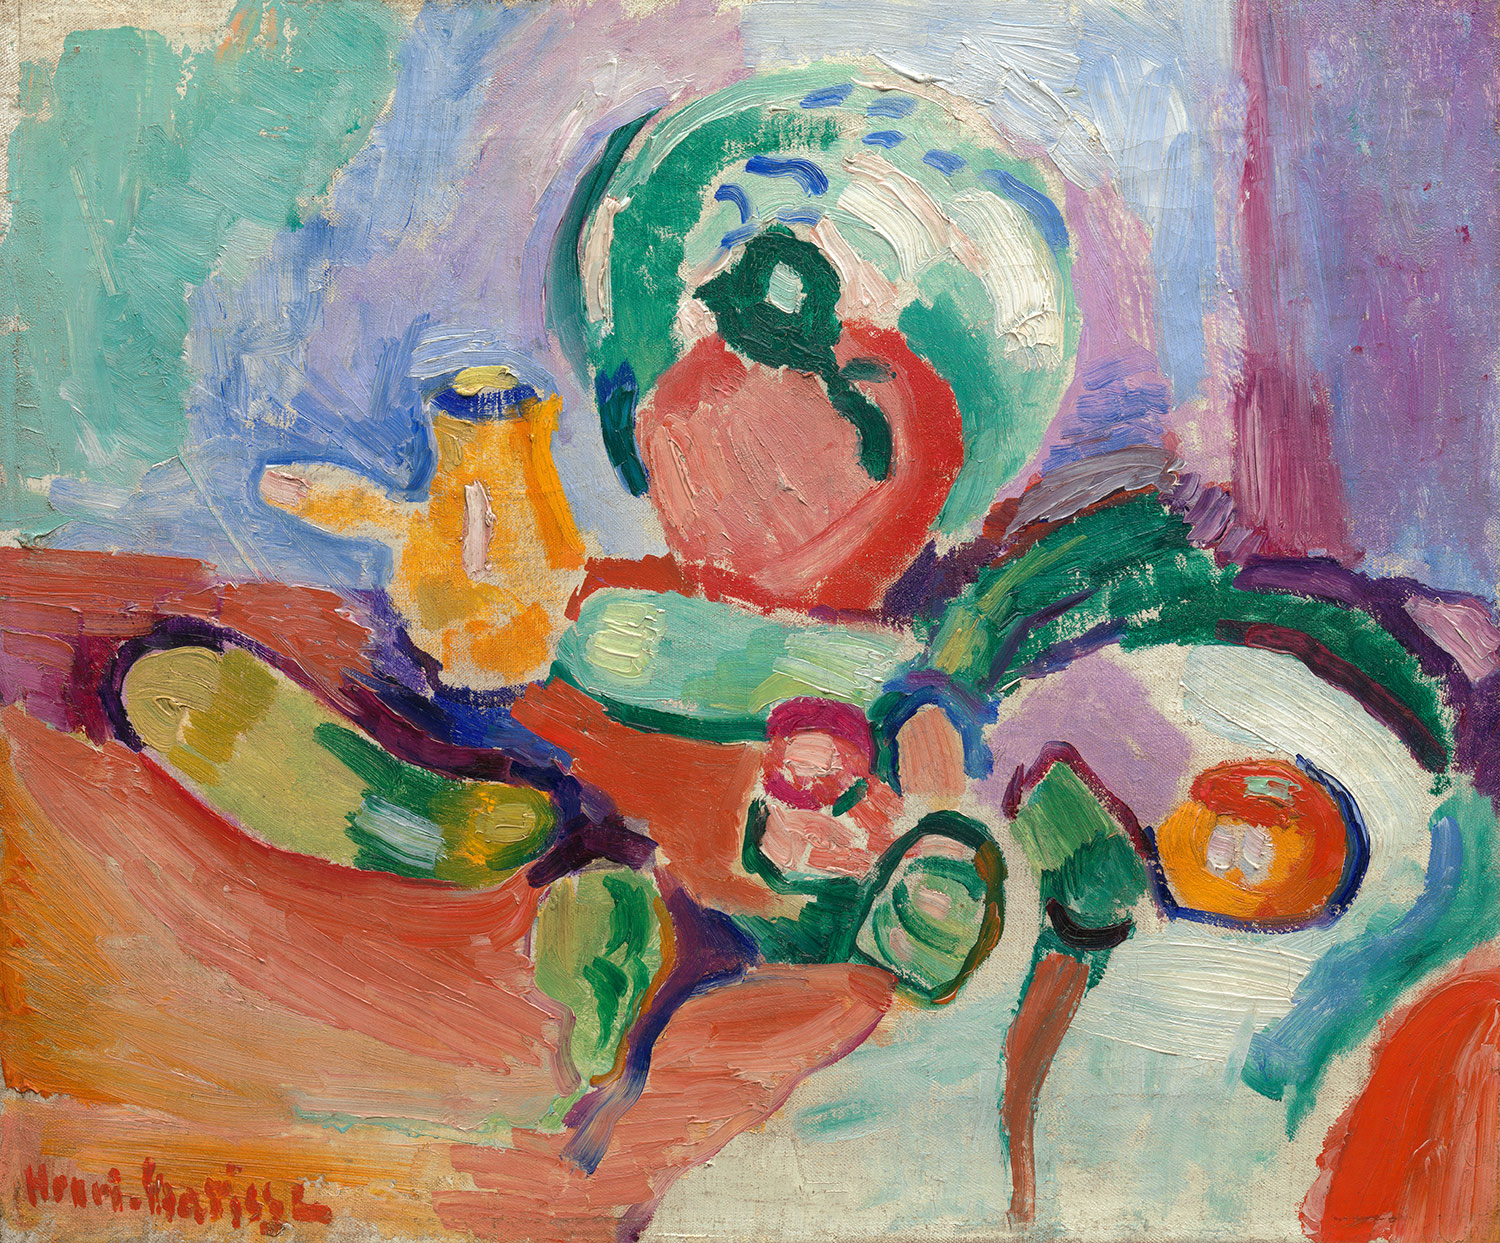 essay on fauvism Cubism and fauvism essayscubism and fauvism were one of the most influential modern arts of the 20th century cubism was developed by spanish artist pablo picasso and.